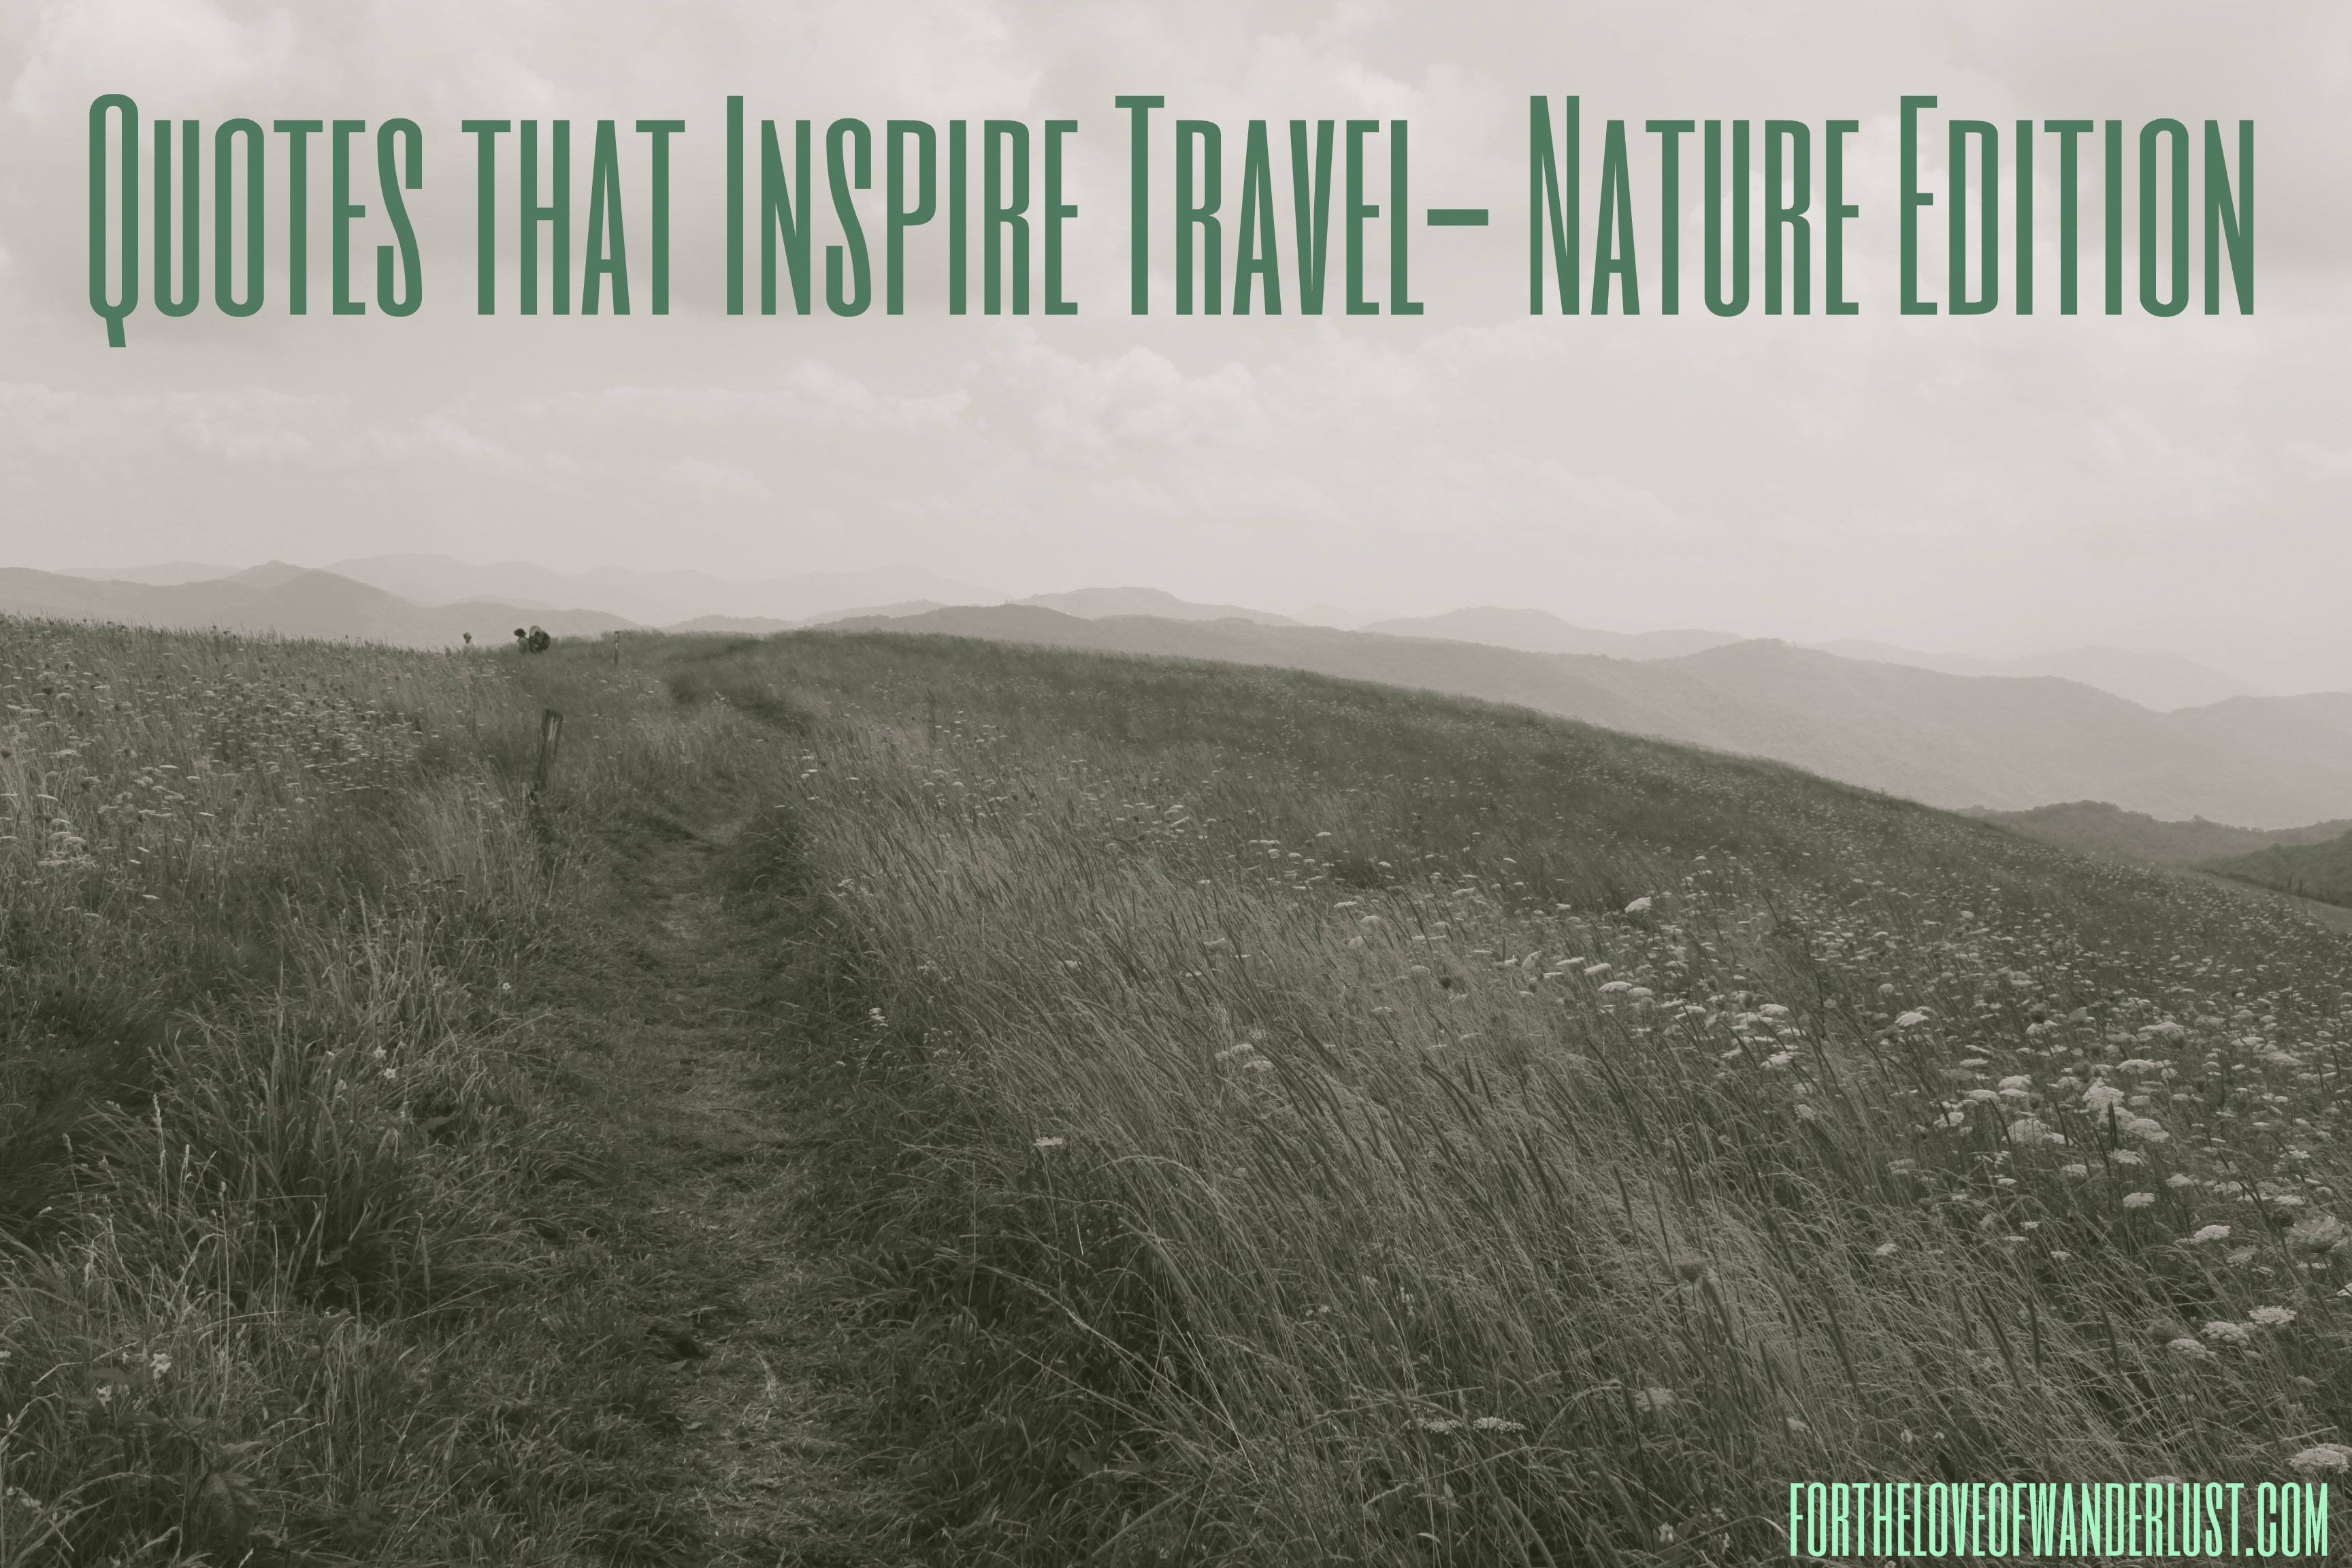 Quotes Nature Quotes That Inspire Travel Part 28 Nature Edition  For The